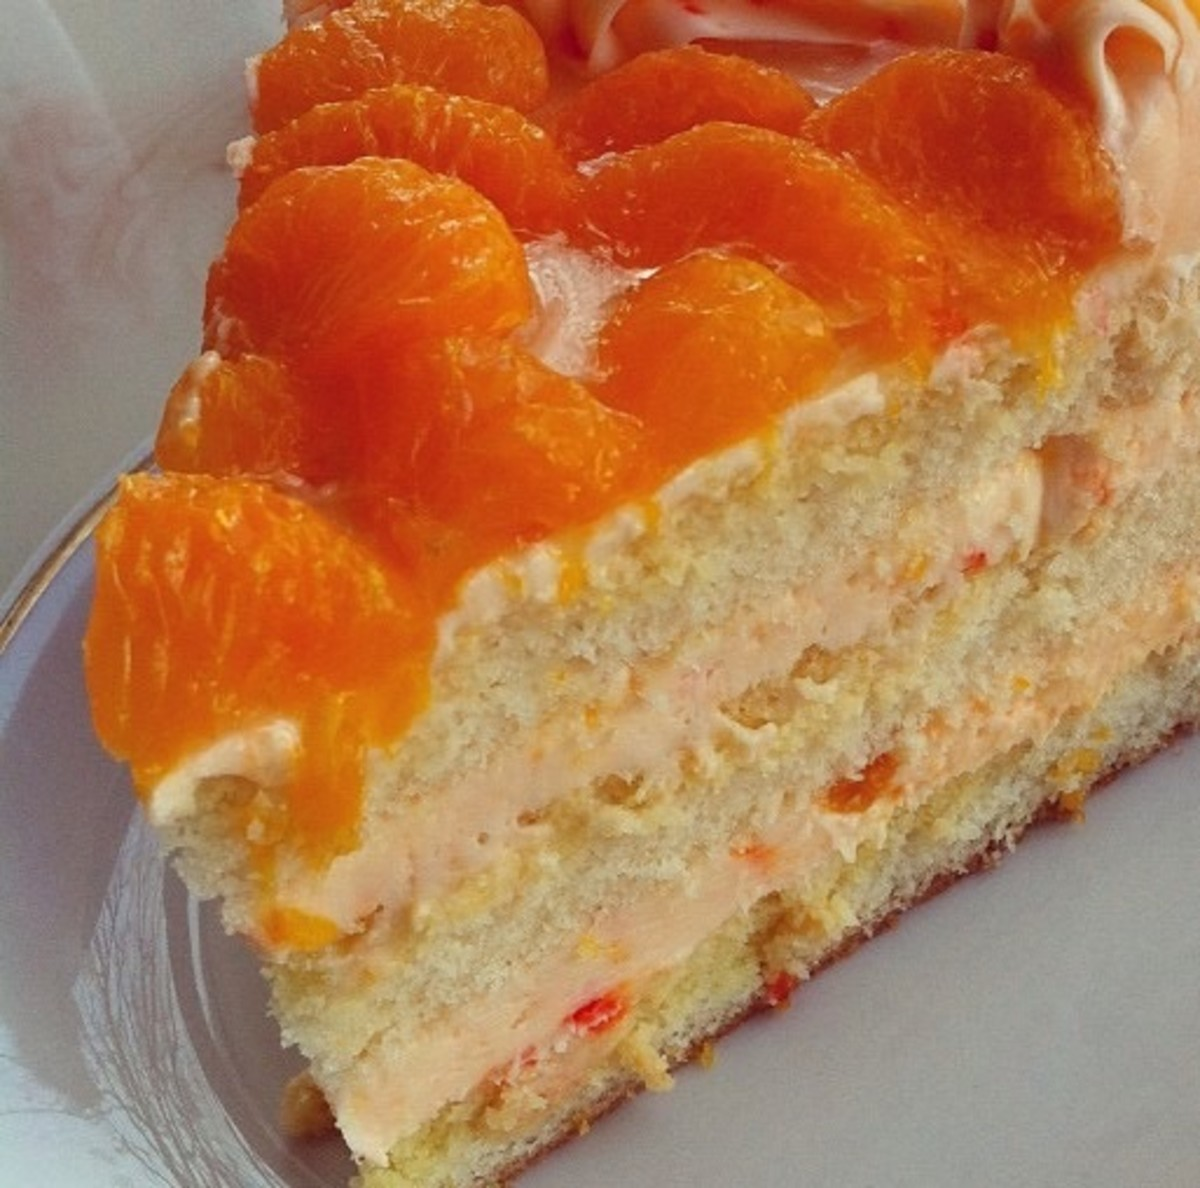 Luscious Mandarin Orange Cake Recipe With a Pineapple Frosting